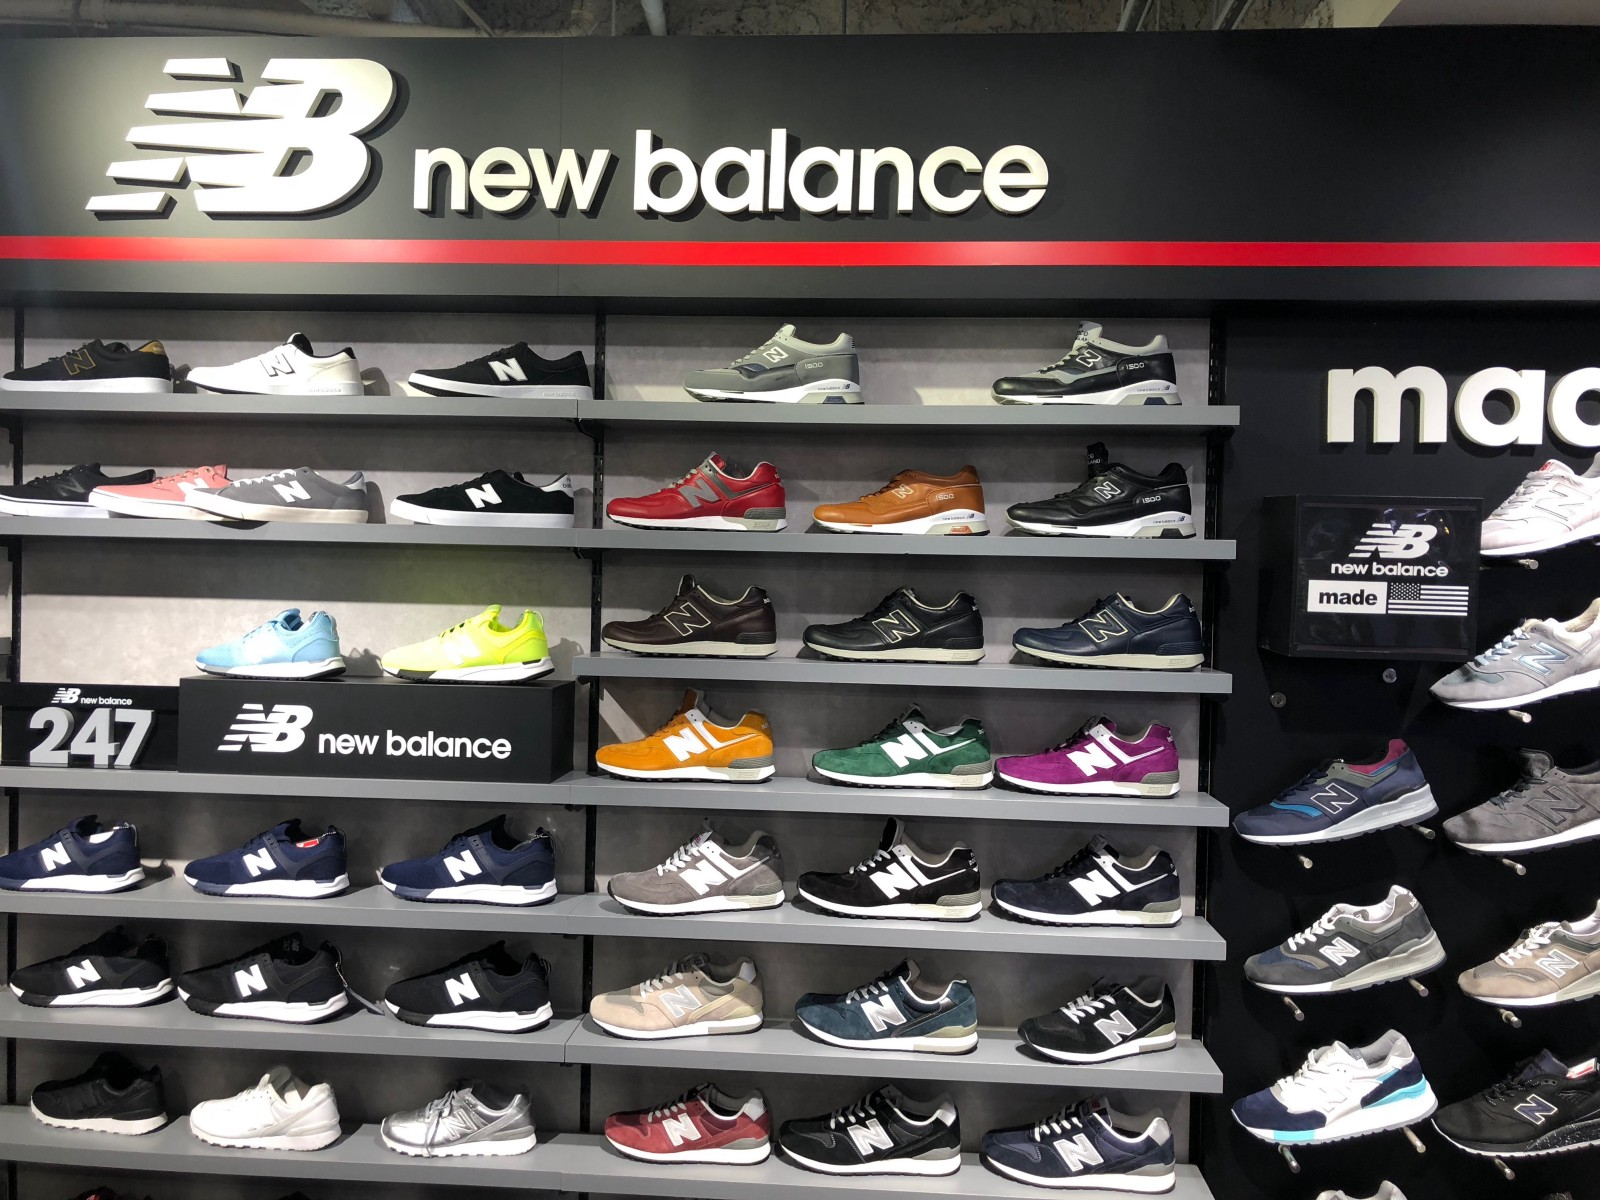 2510fc4aa5a1df ABC-MART GRAND STAGE Shibuya Center-gai is one of the largest sneakers  stores providing clothing fashion items as well as a variety of brands of  sneakers.